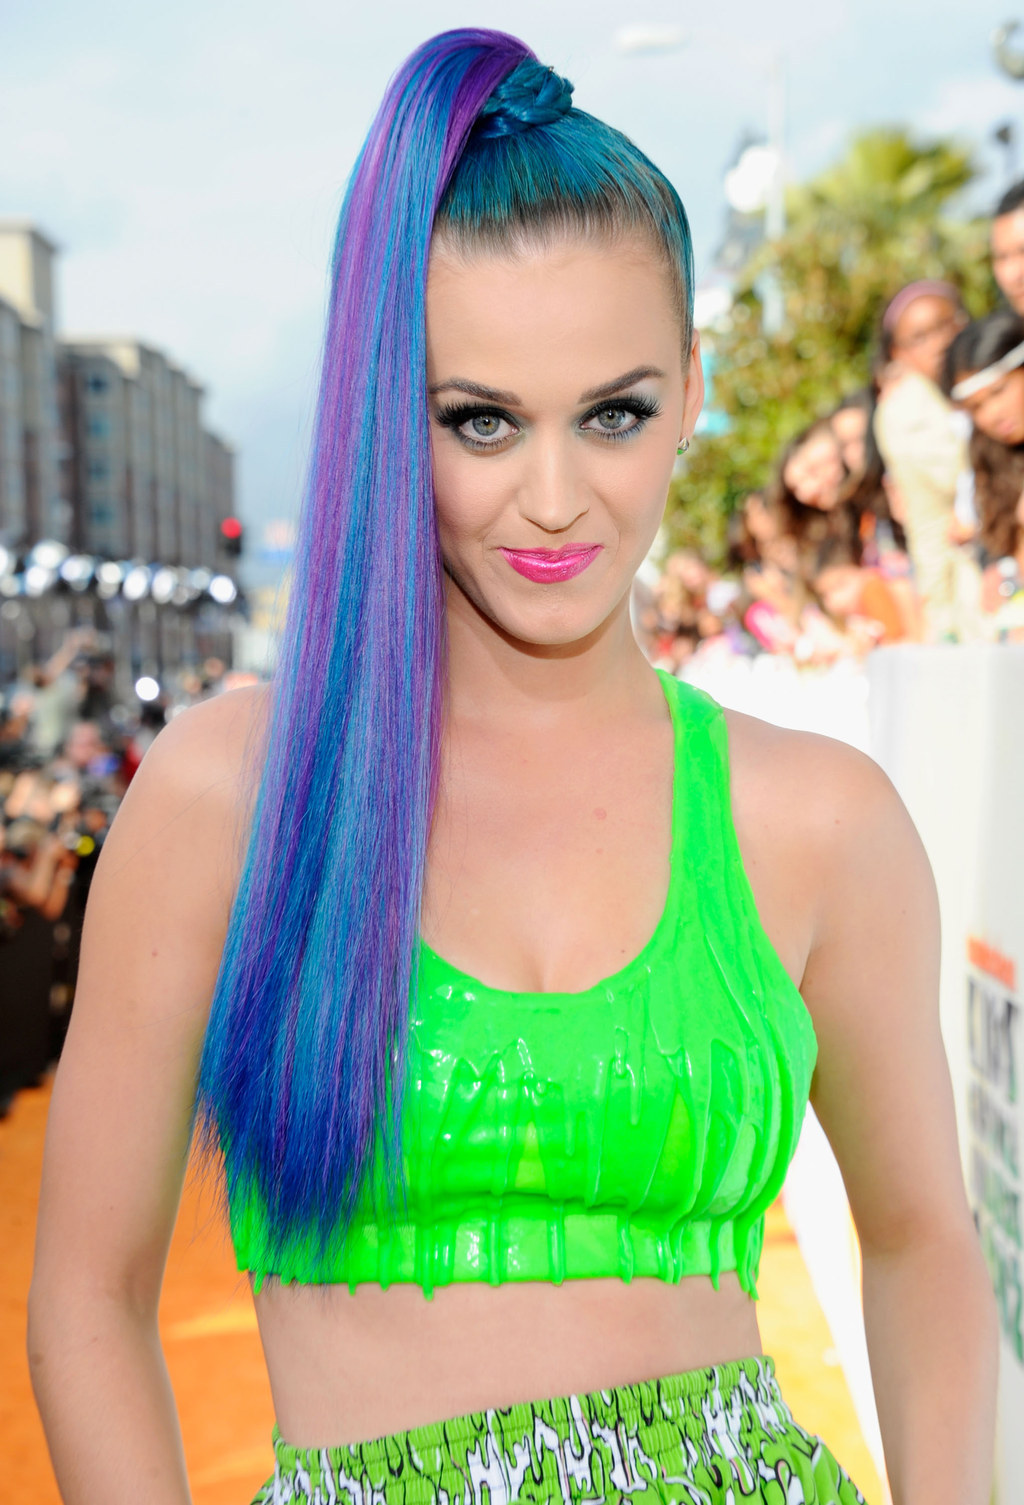 Katy Perry May Have Just April Fooled Us Into The Best Haircut Ever